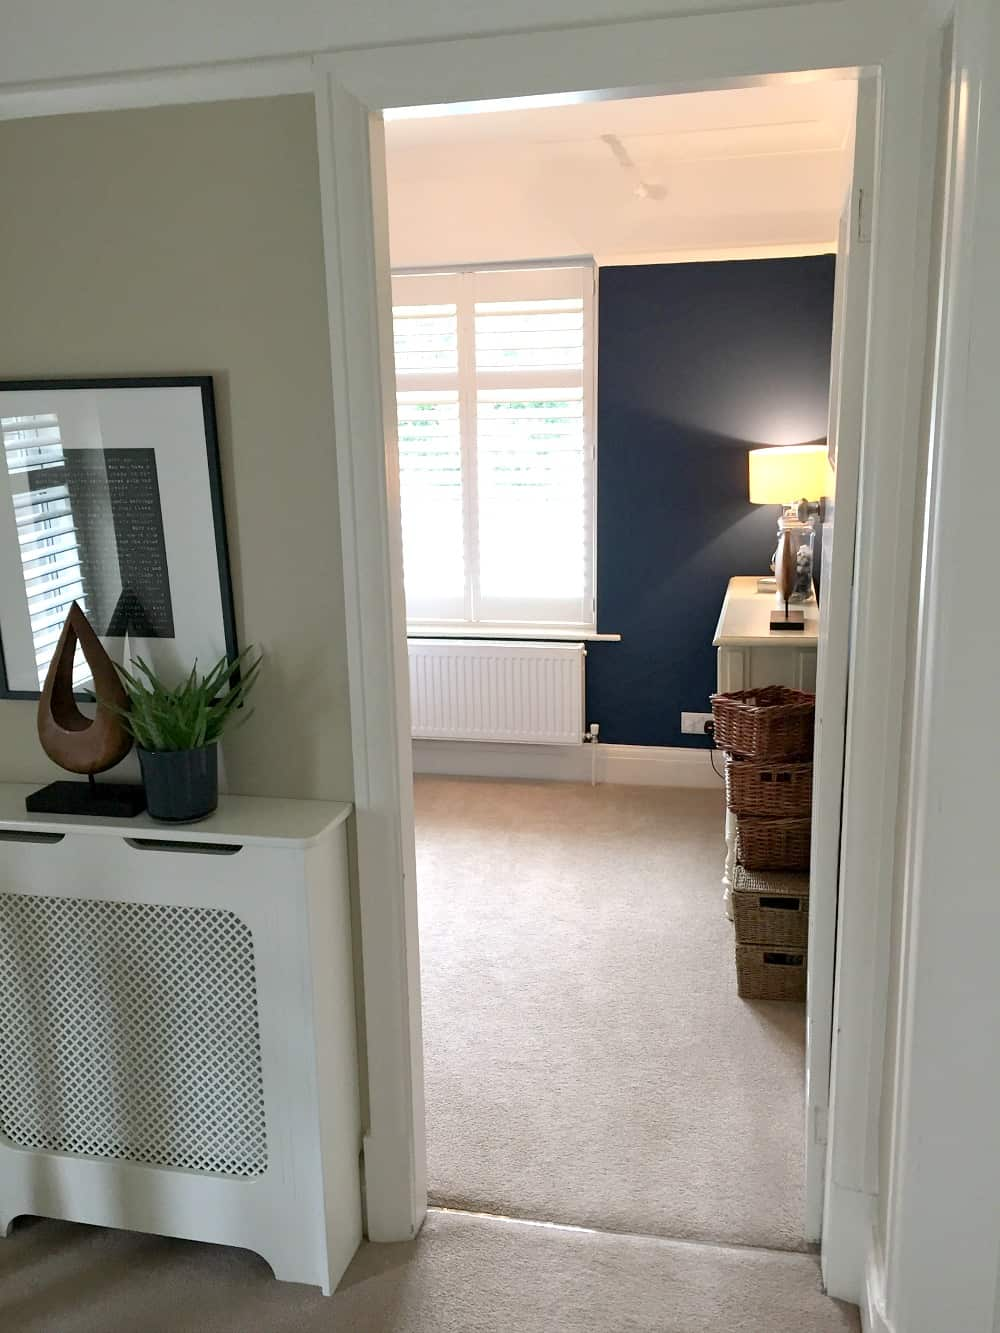 Small room with dark walls - dark blue painted walls in bedroom - Interior Design - Home styling - bedroom blue walls - B&Q paint Deep Blue Sea